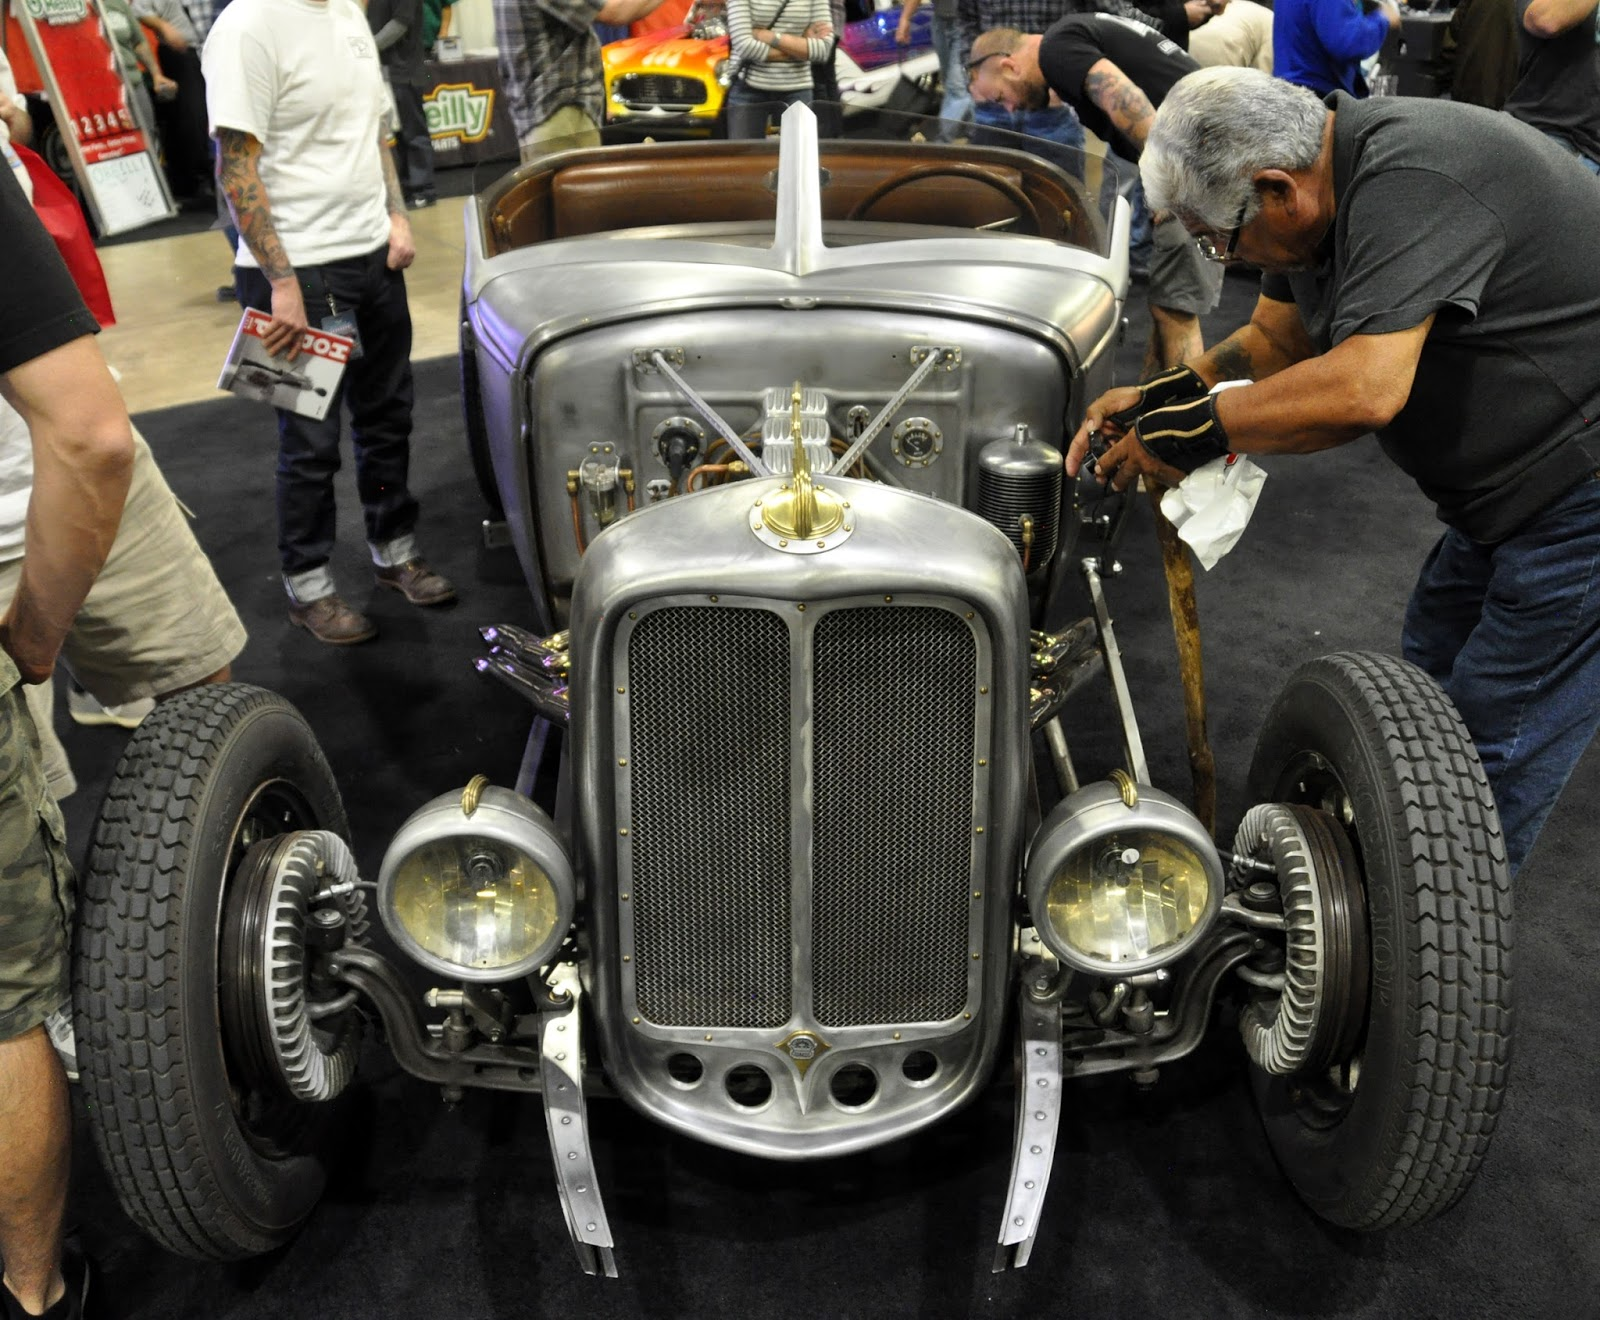 Just A Car Guy: Hollywood Hot Rods made last years AMBR winner, and ...